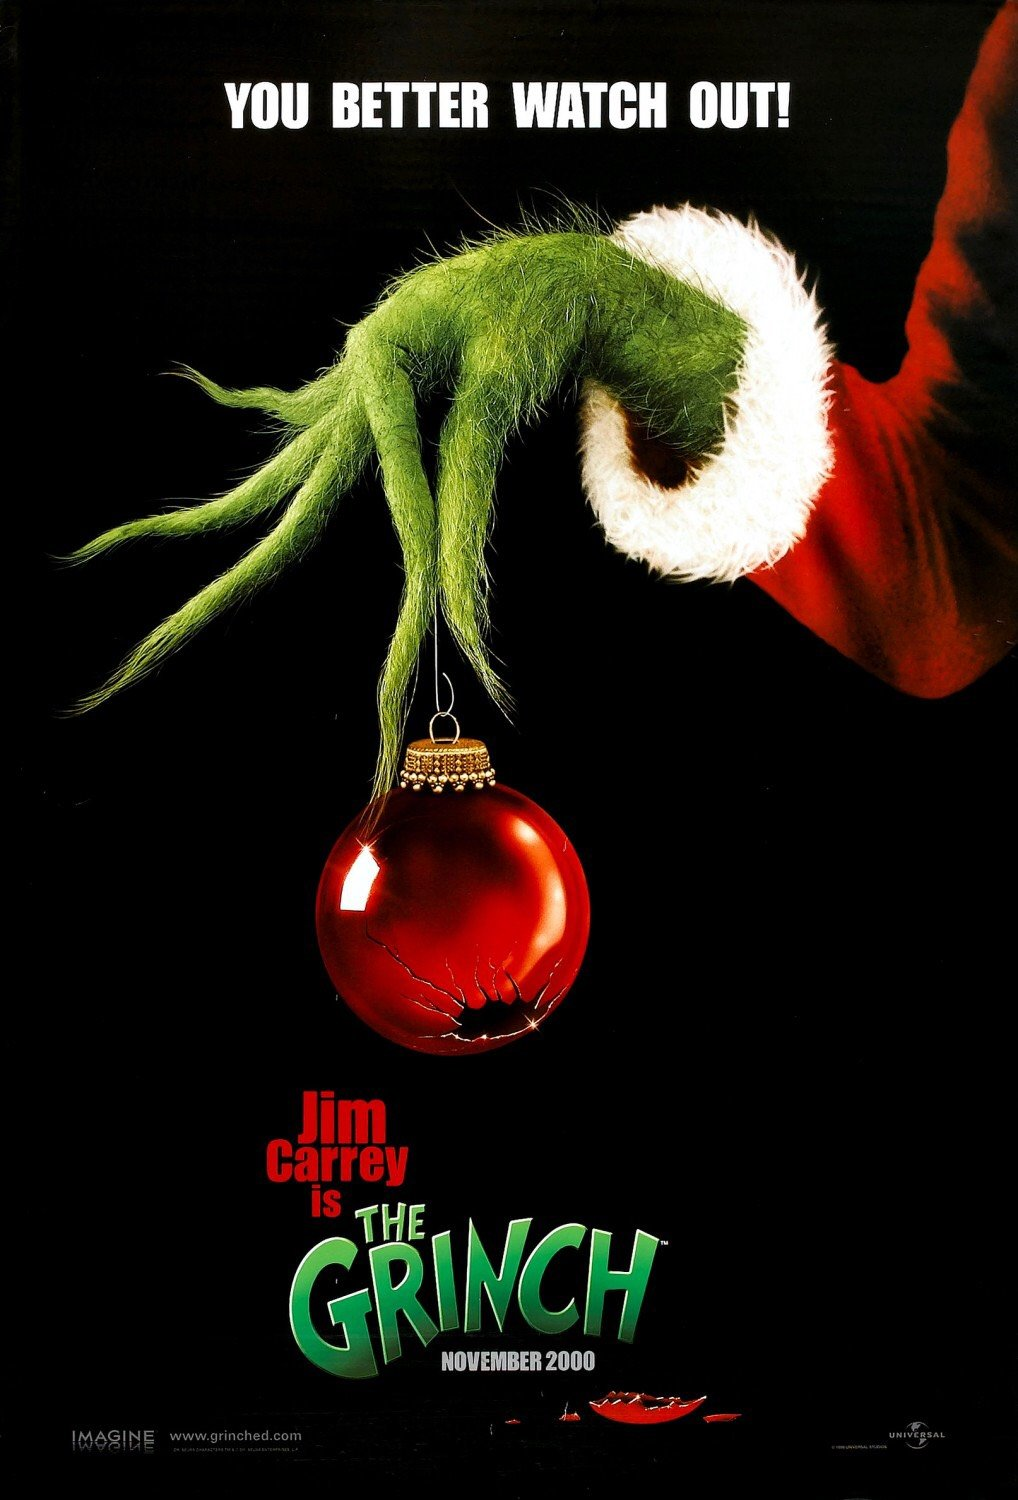 Dr. Seuss' How The Grinch Stole Christmas vudu HD redeem only